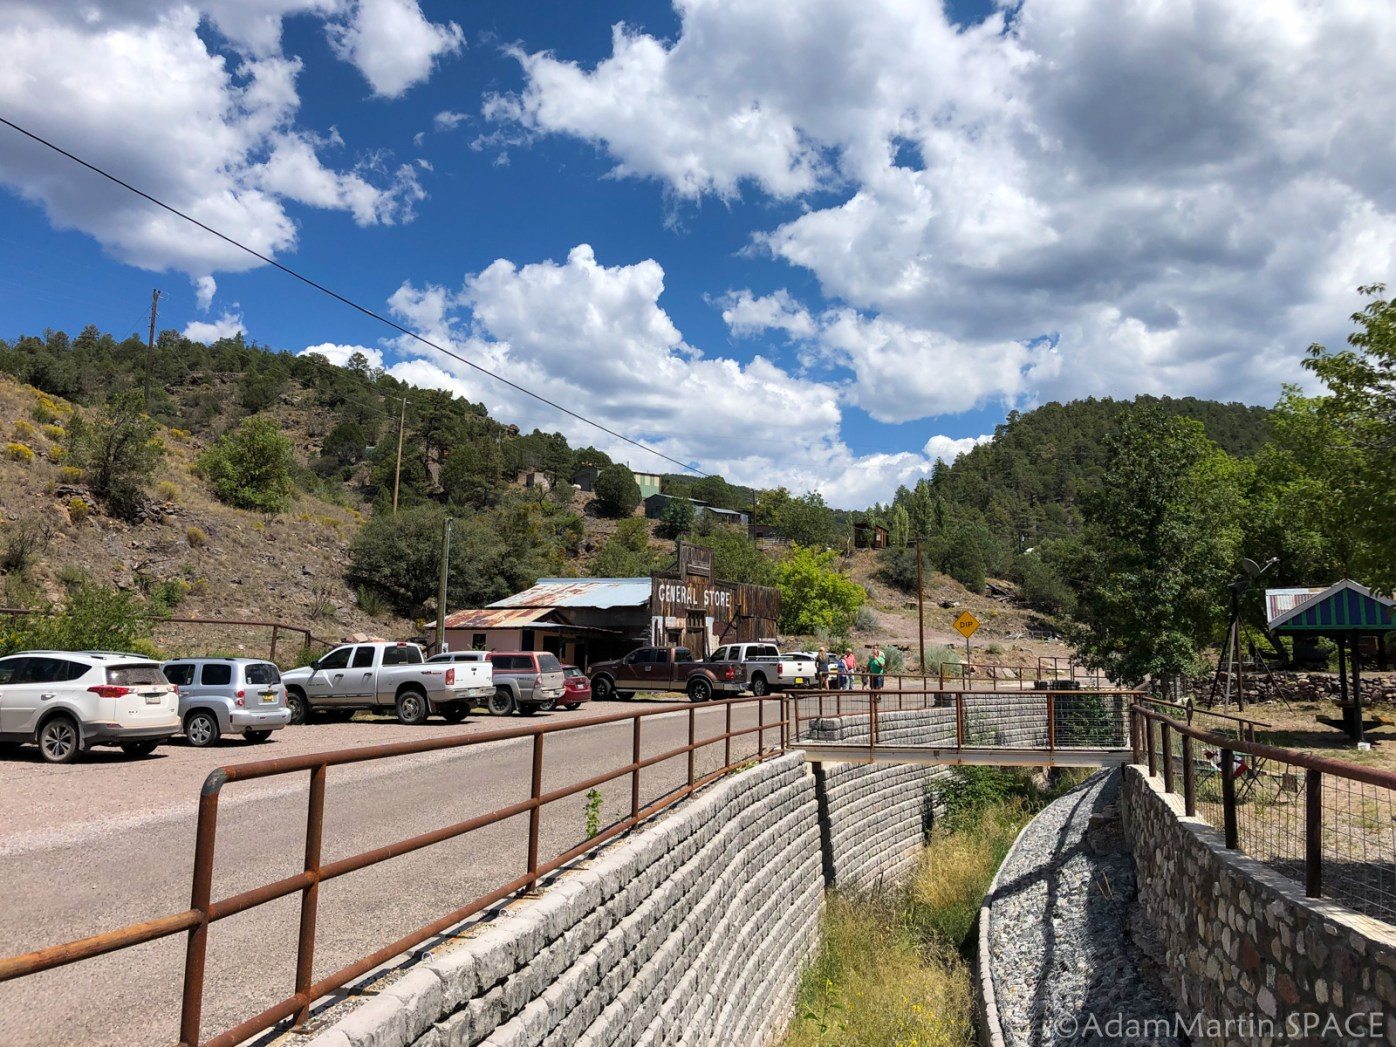 Mogollon, NM - General store & wide view of town